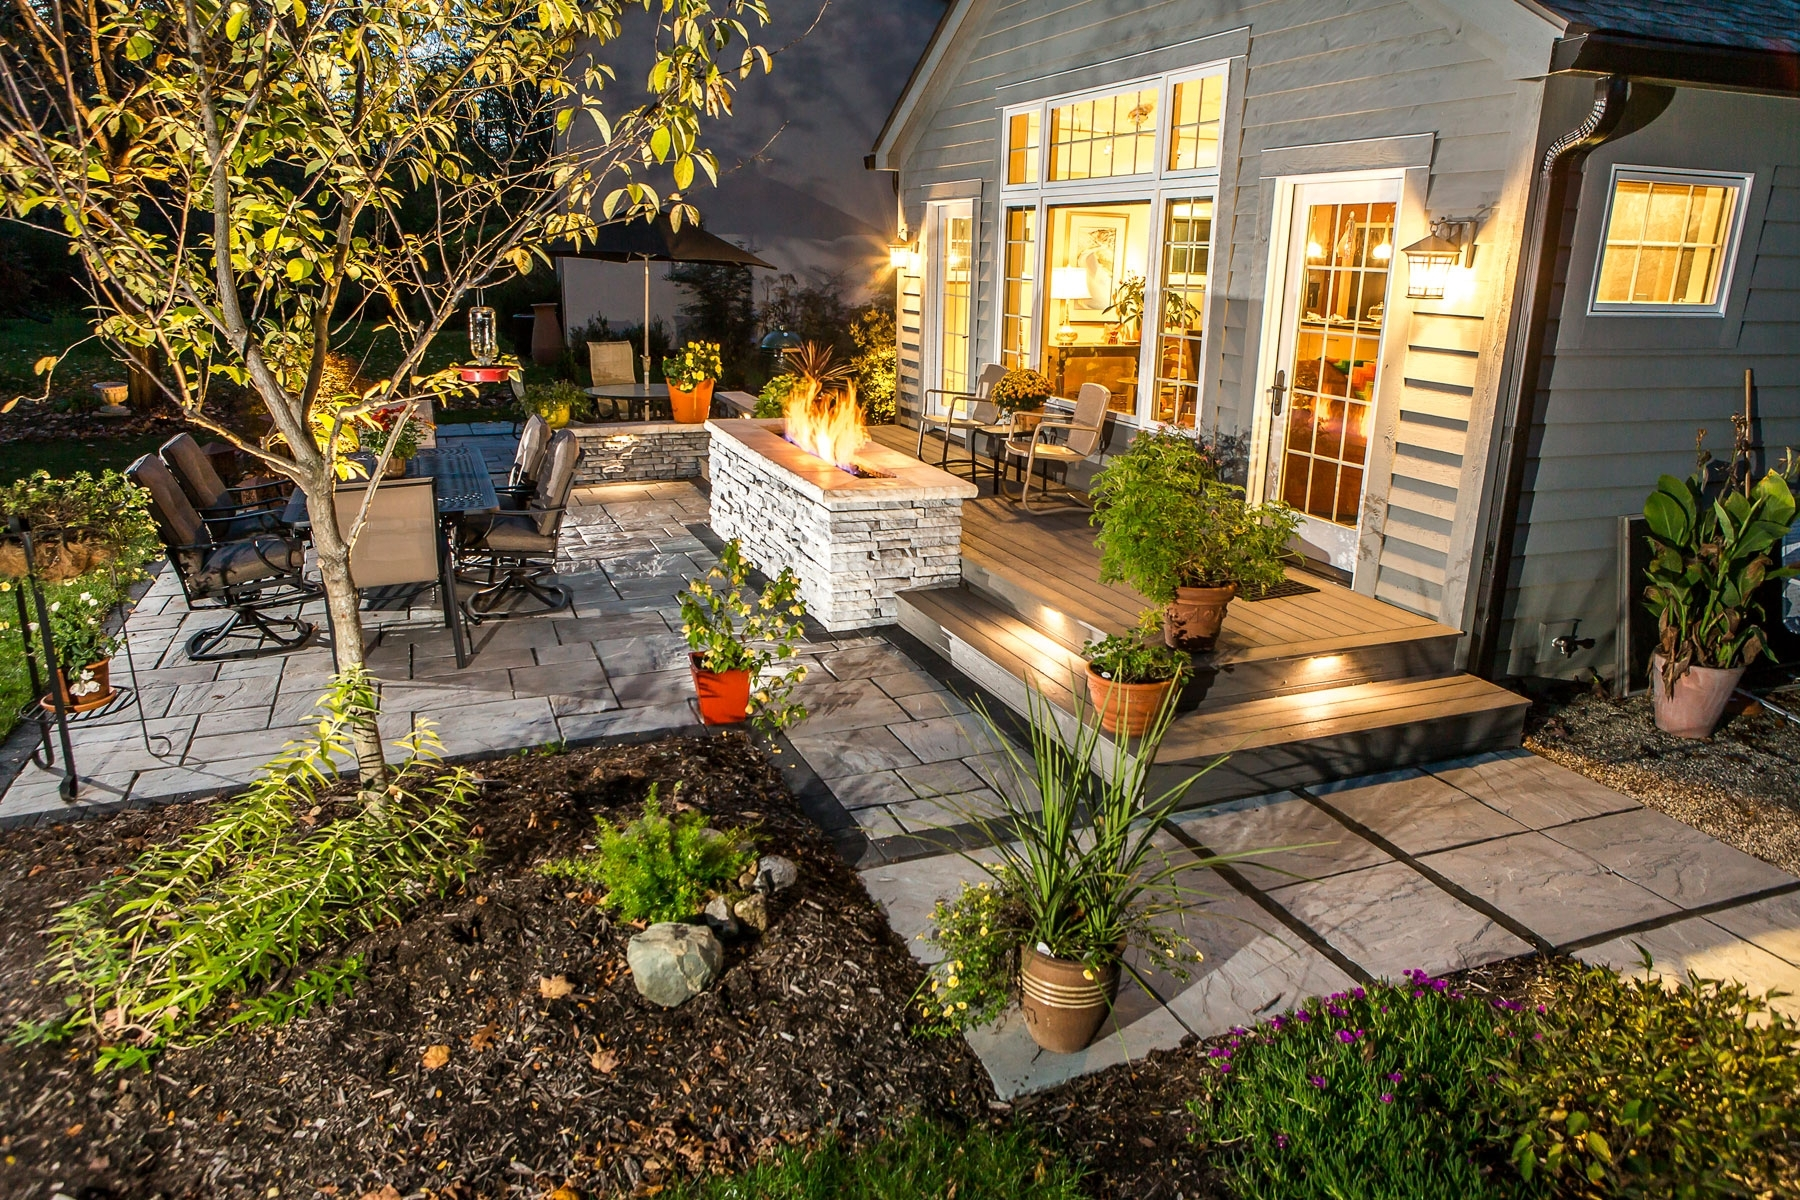 Outdoor Landscape Lighting For Patios, Walkways, And Retaining Walls Intended For Most Current Outdoor Retaining Wall Lighting (View 13 of 20)